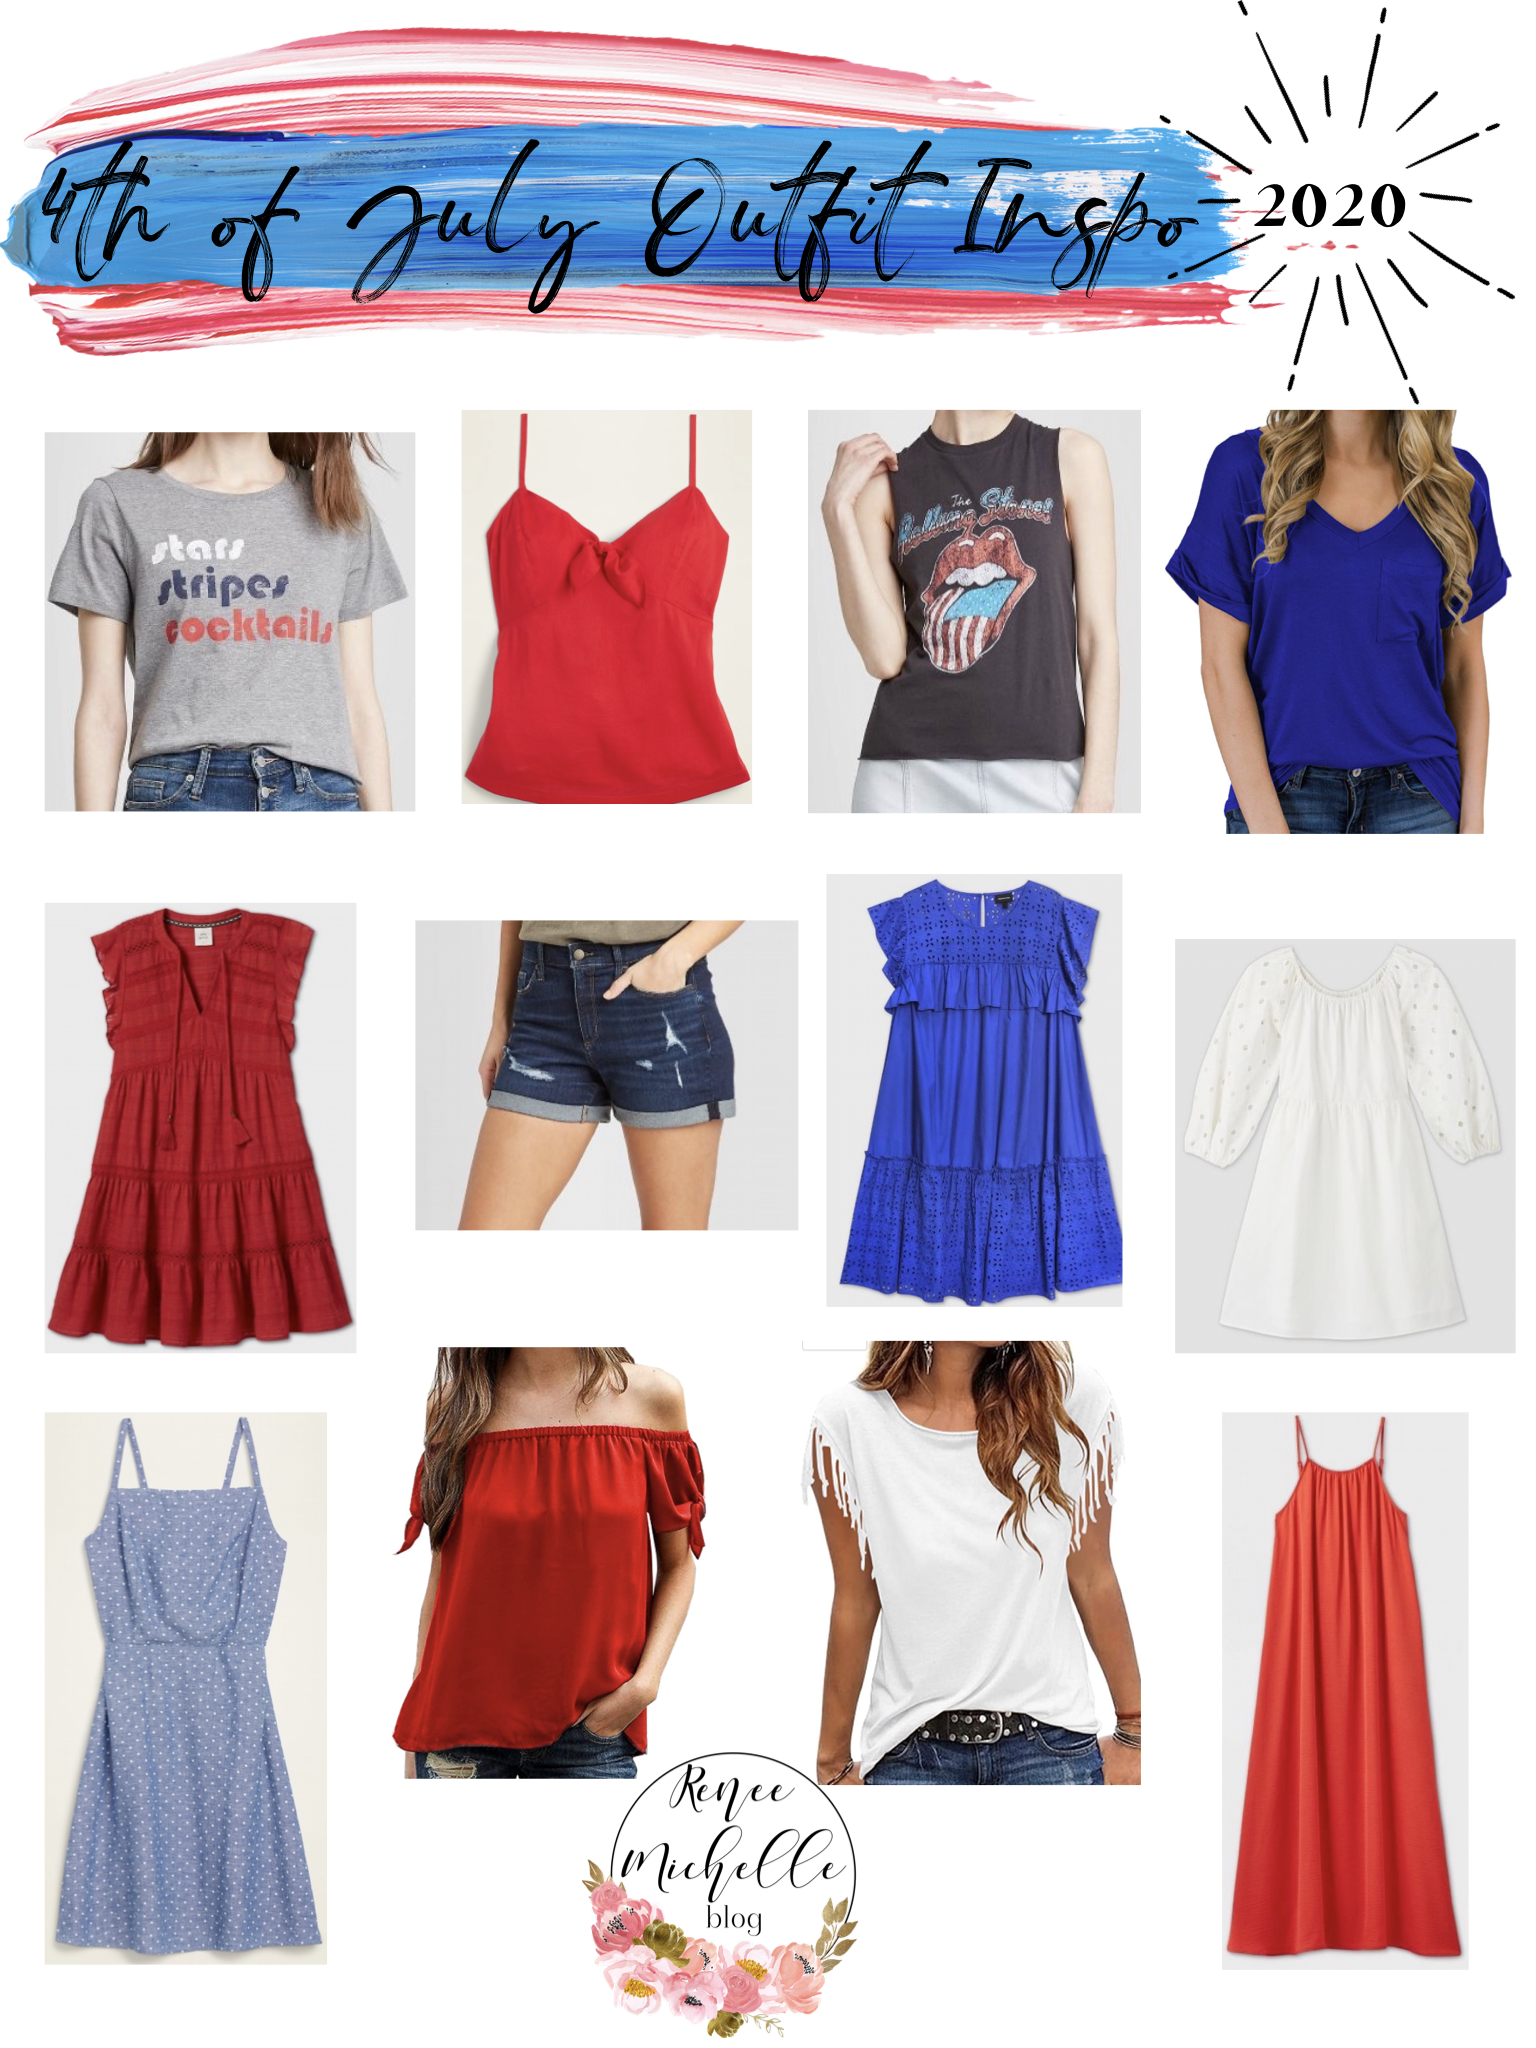 4th of July Outfit Inspo